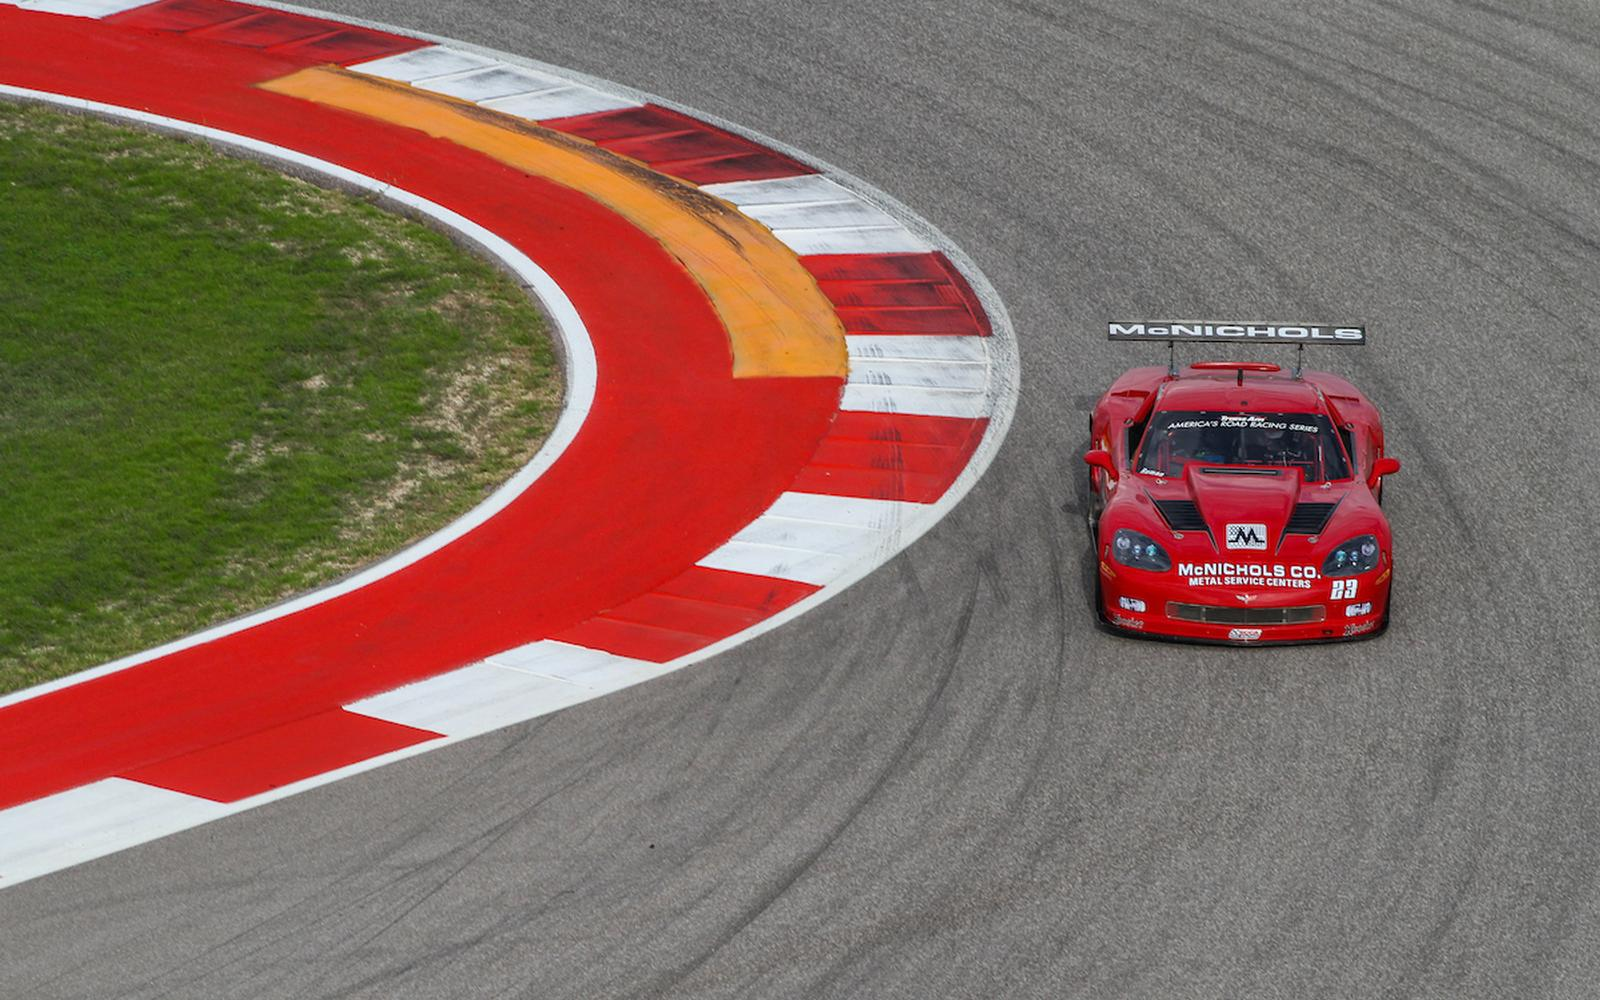 Down to the Final Two – COTA and Daytona are Must Wins for Amy Ruman